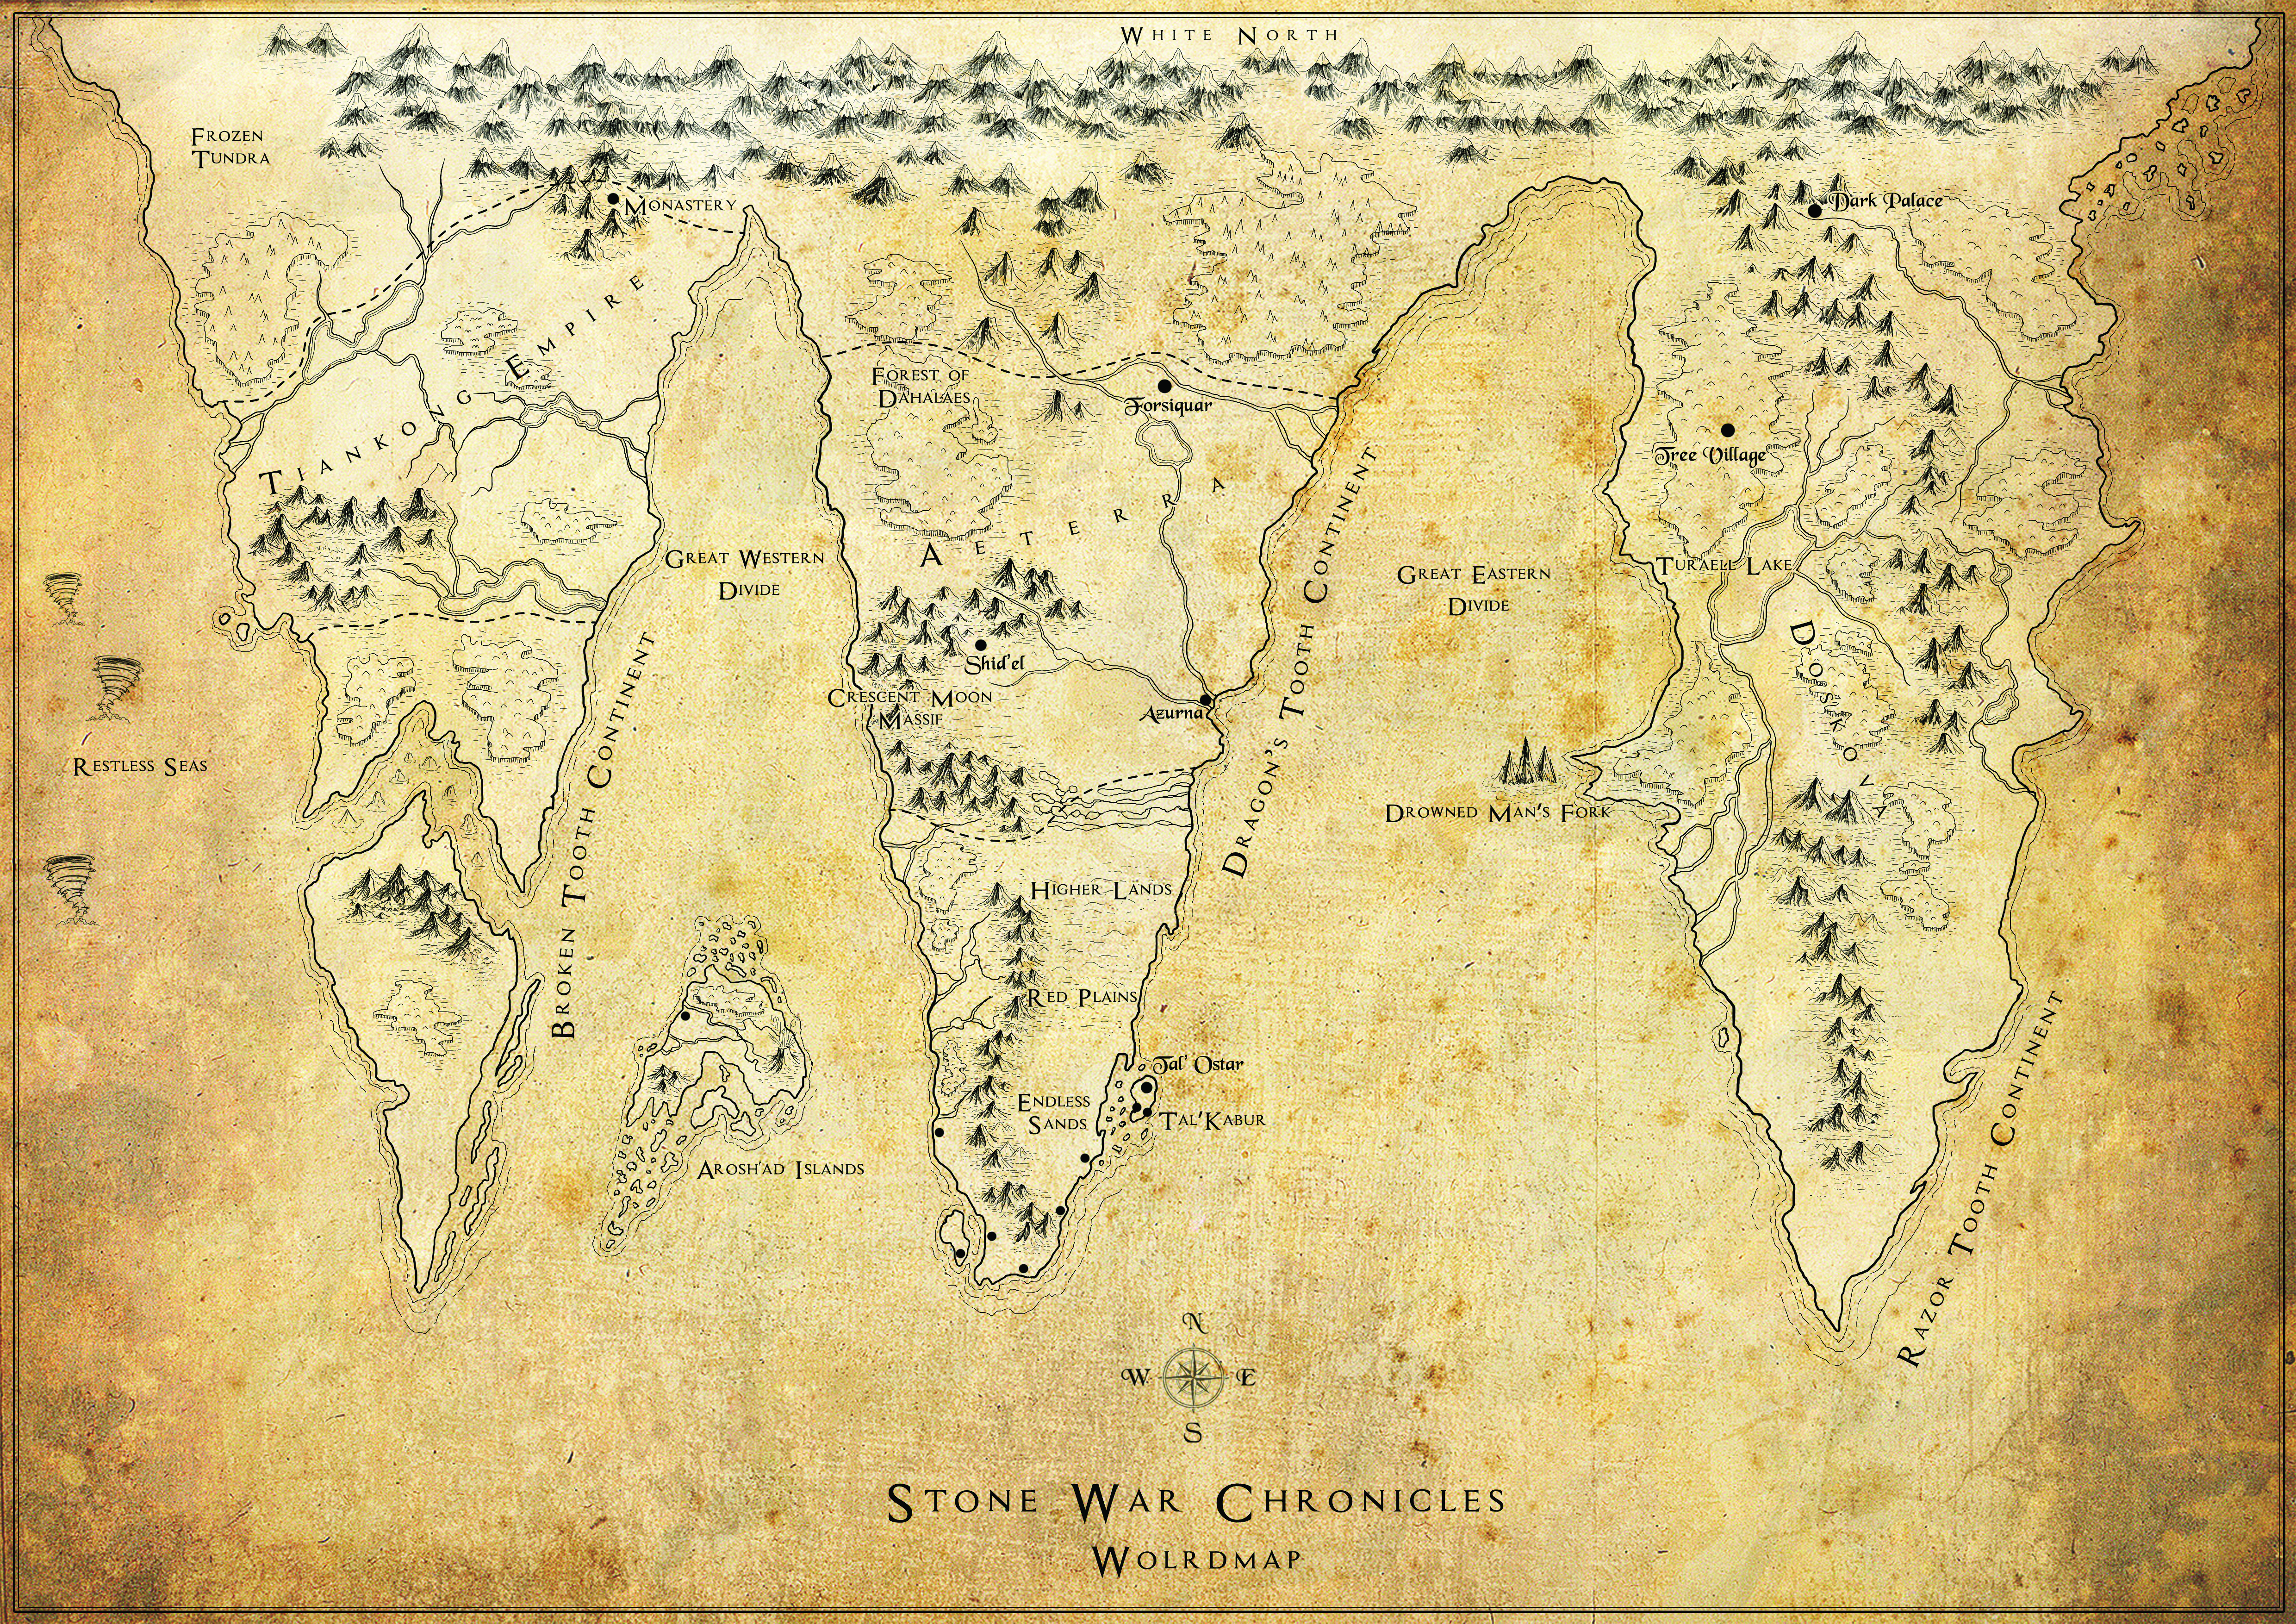 How To Create A Fictional World Map.How To Create A Fantasy World Map Stone War Chronicles